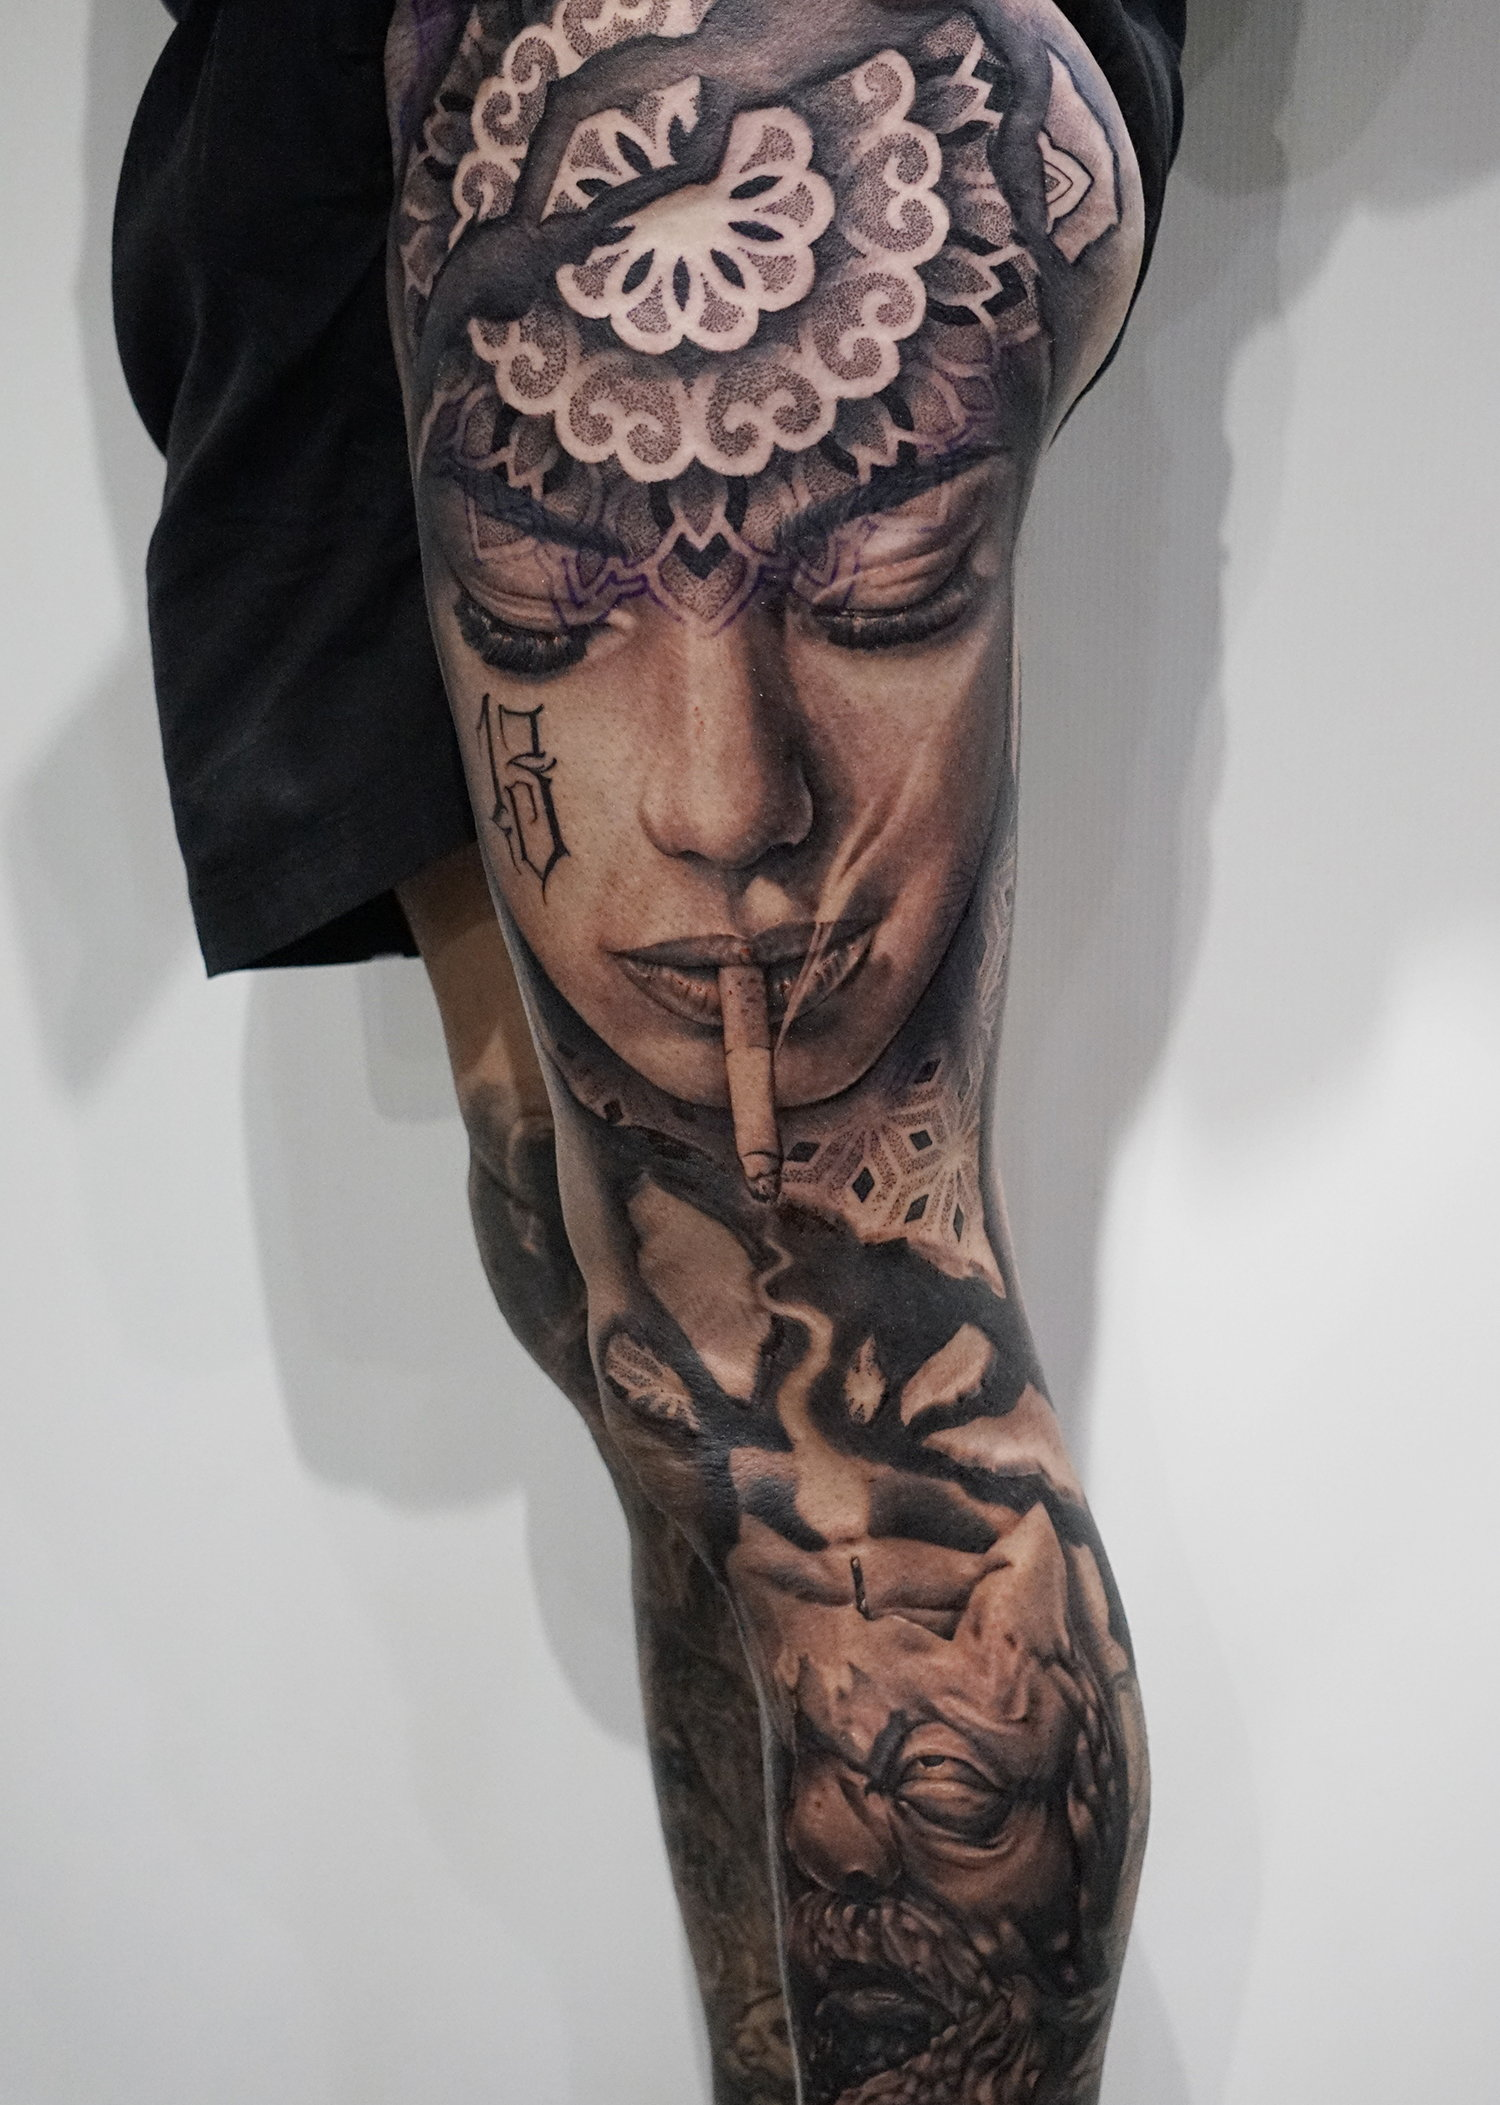 Another collaboration, this time by tattooists Joao Dias and Theo Pedrada.